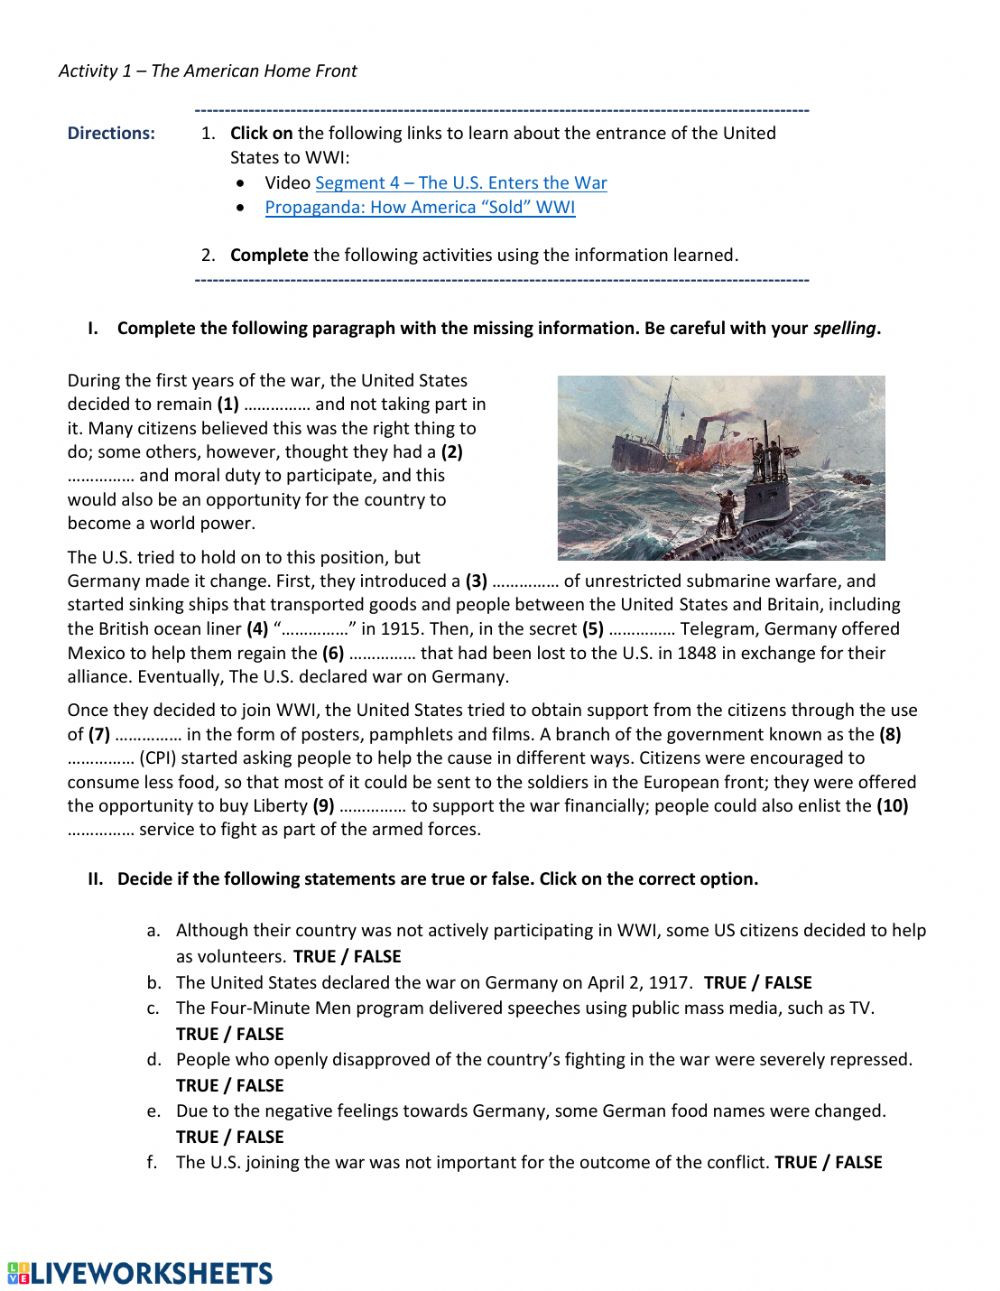 Spanish American War Worksheet Wwi the American Home Front Interactive Worksheet